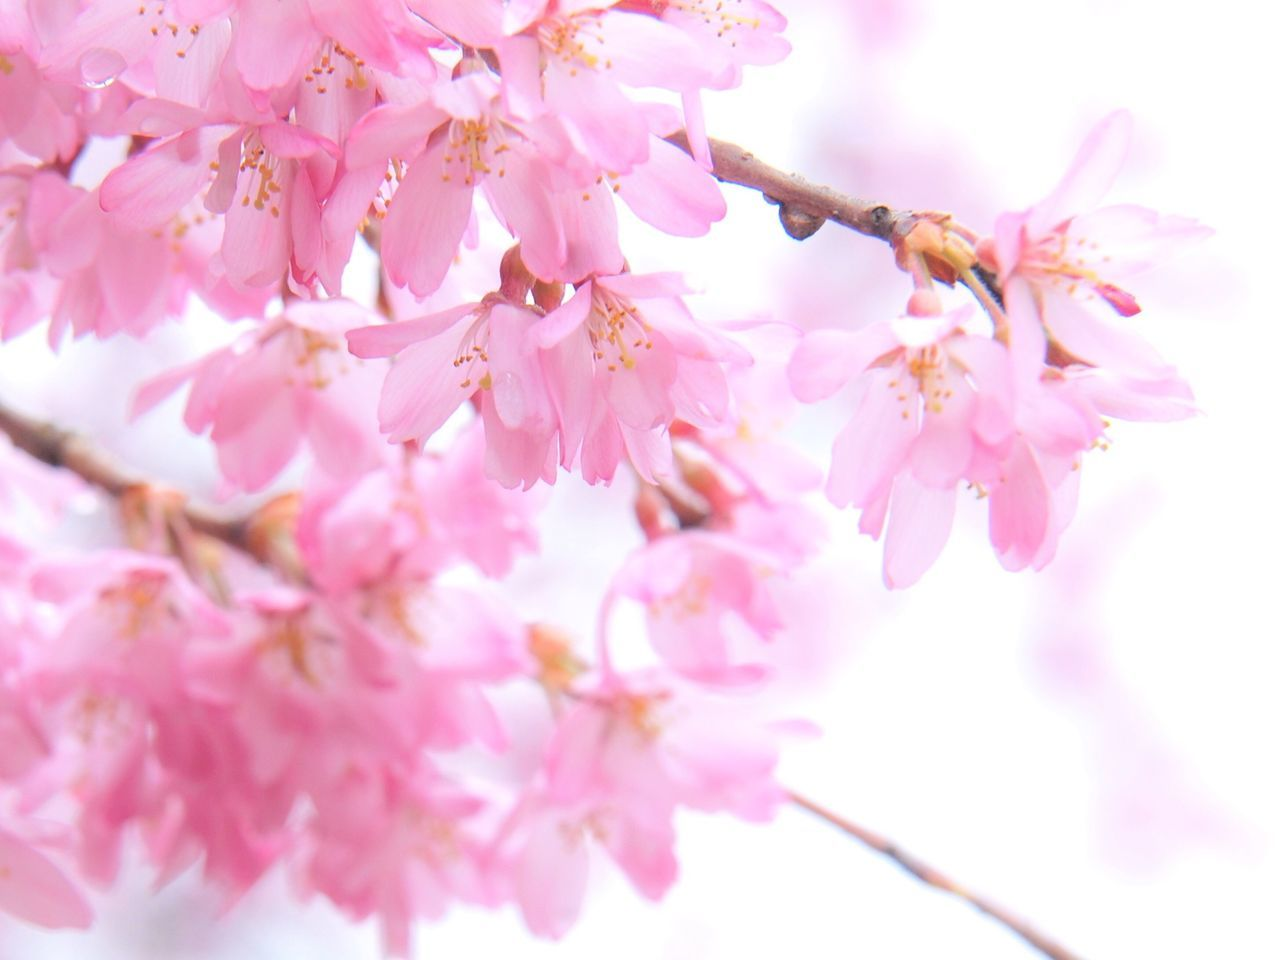 flower, pink color, blossom, fragility, springtime, beauty in nature, cherry blossom, branch, nature, cherry tree, tree, petal, growth, freshness, botany, twig, stamen, apple blossom, flower head, no people, close-up, plum blossom, pink, day, outdoors, blooming